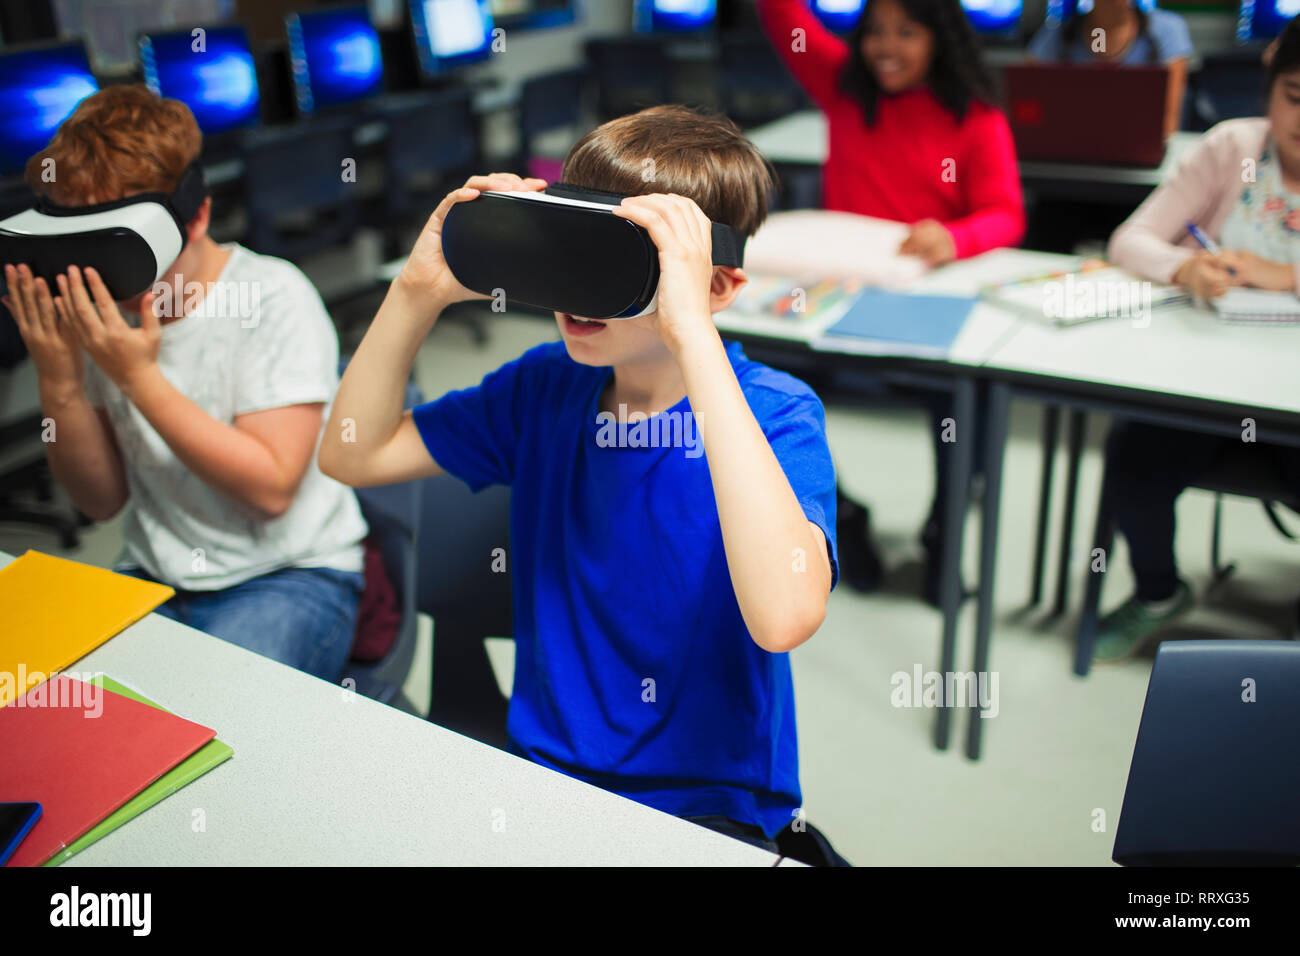 Junior high school boy students using virtual reality simulators in classroom Stock Photo